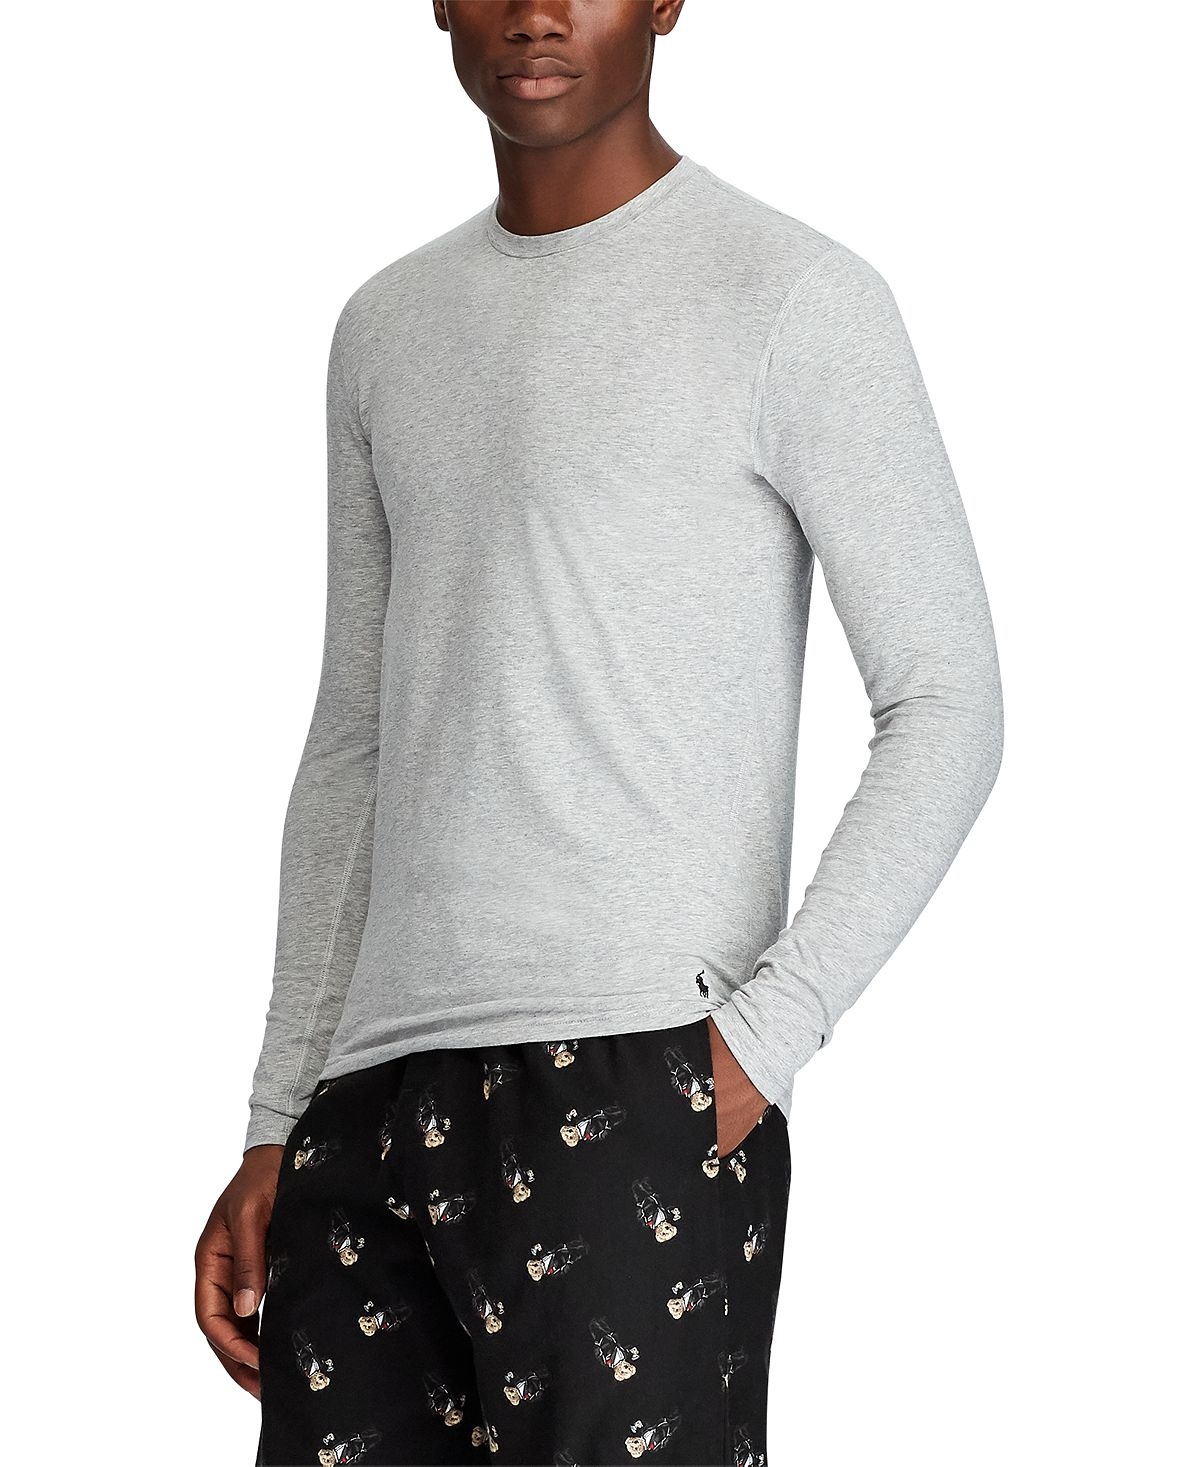 Polo Ralph Lauren Long John Shirt Andover Heather